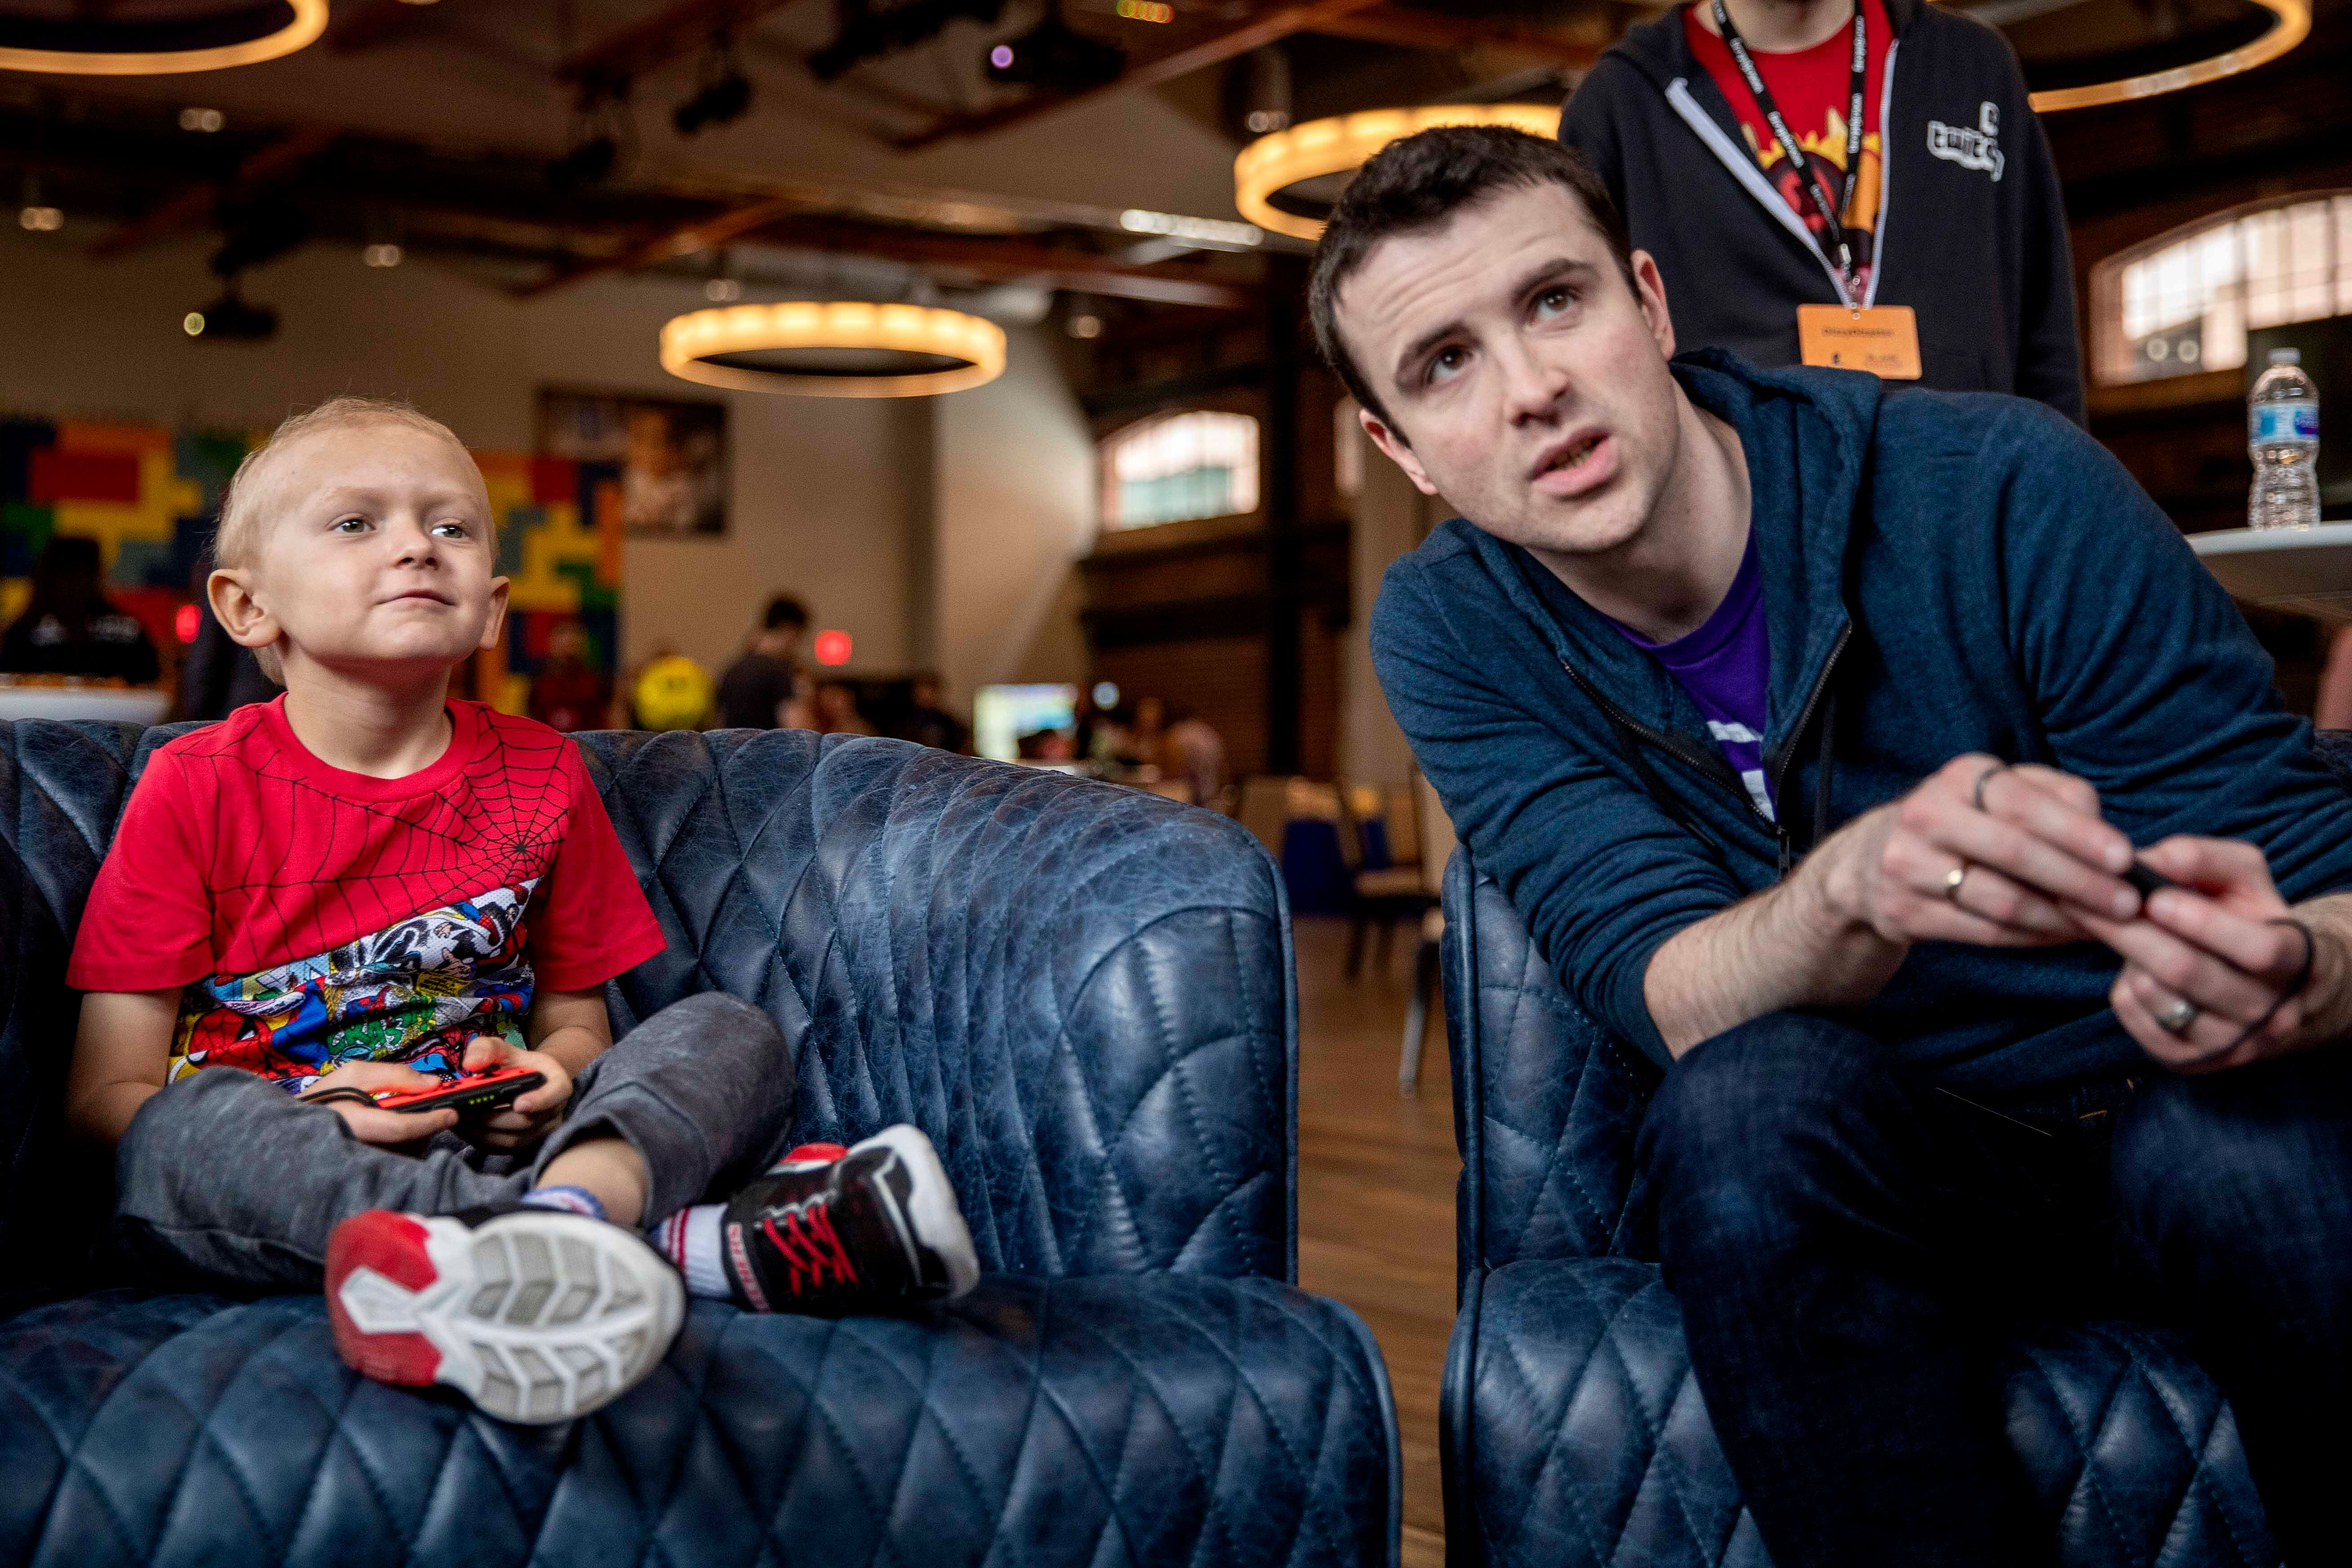 For DrLupo, using his channel to fight childhood cancer makes sense